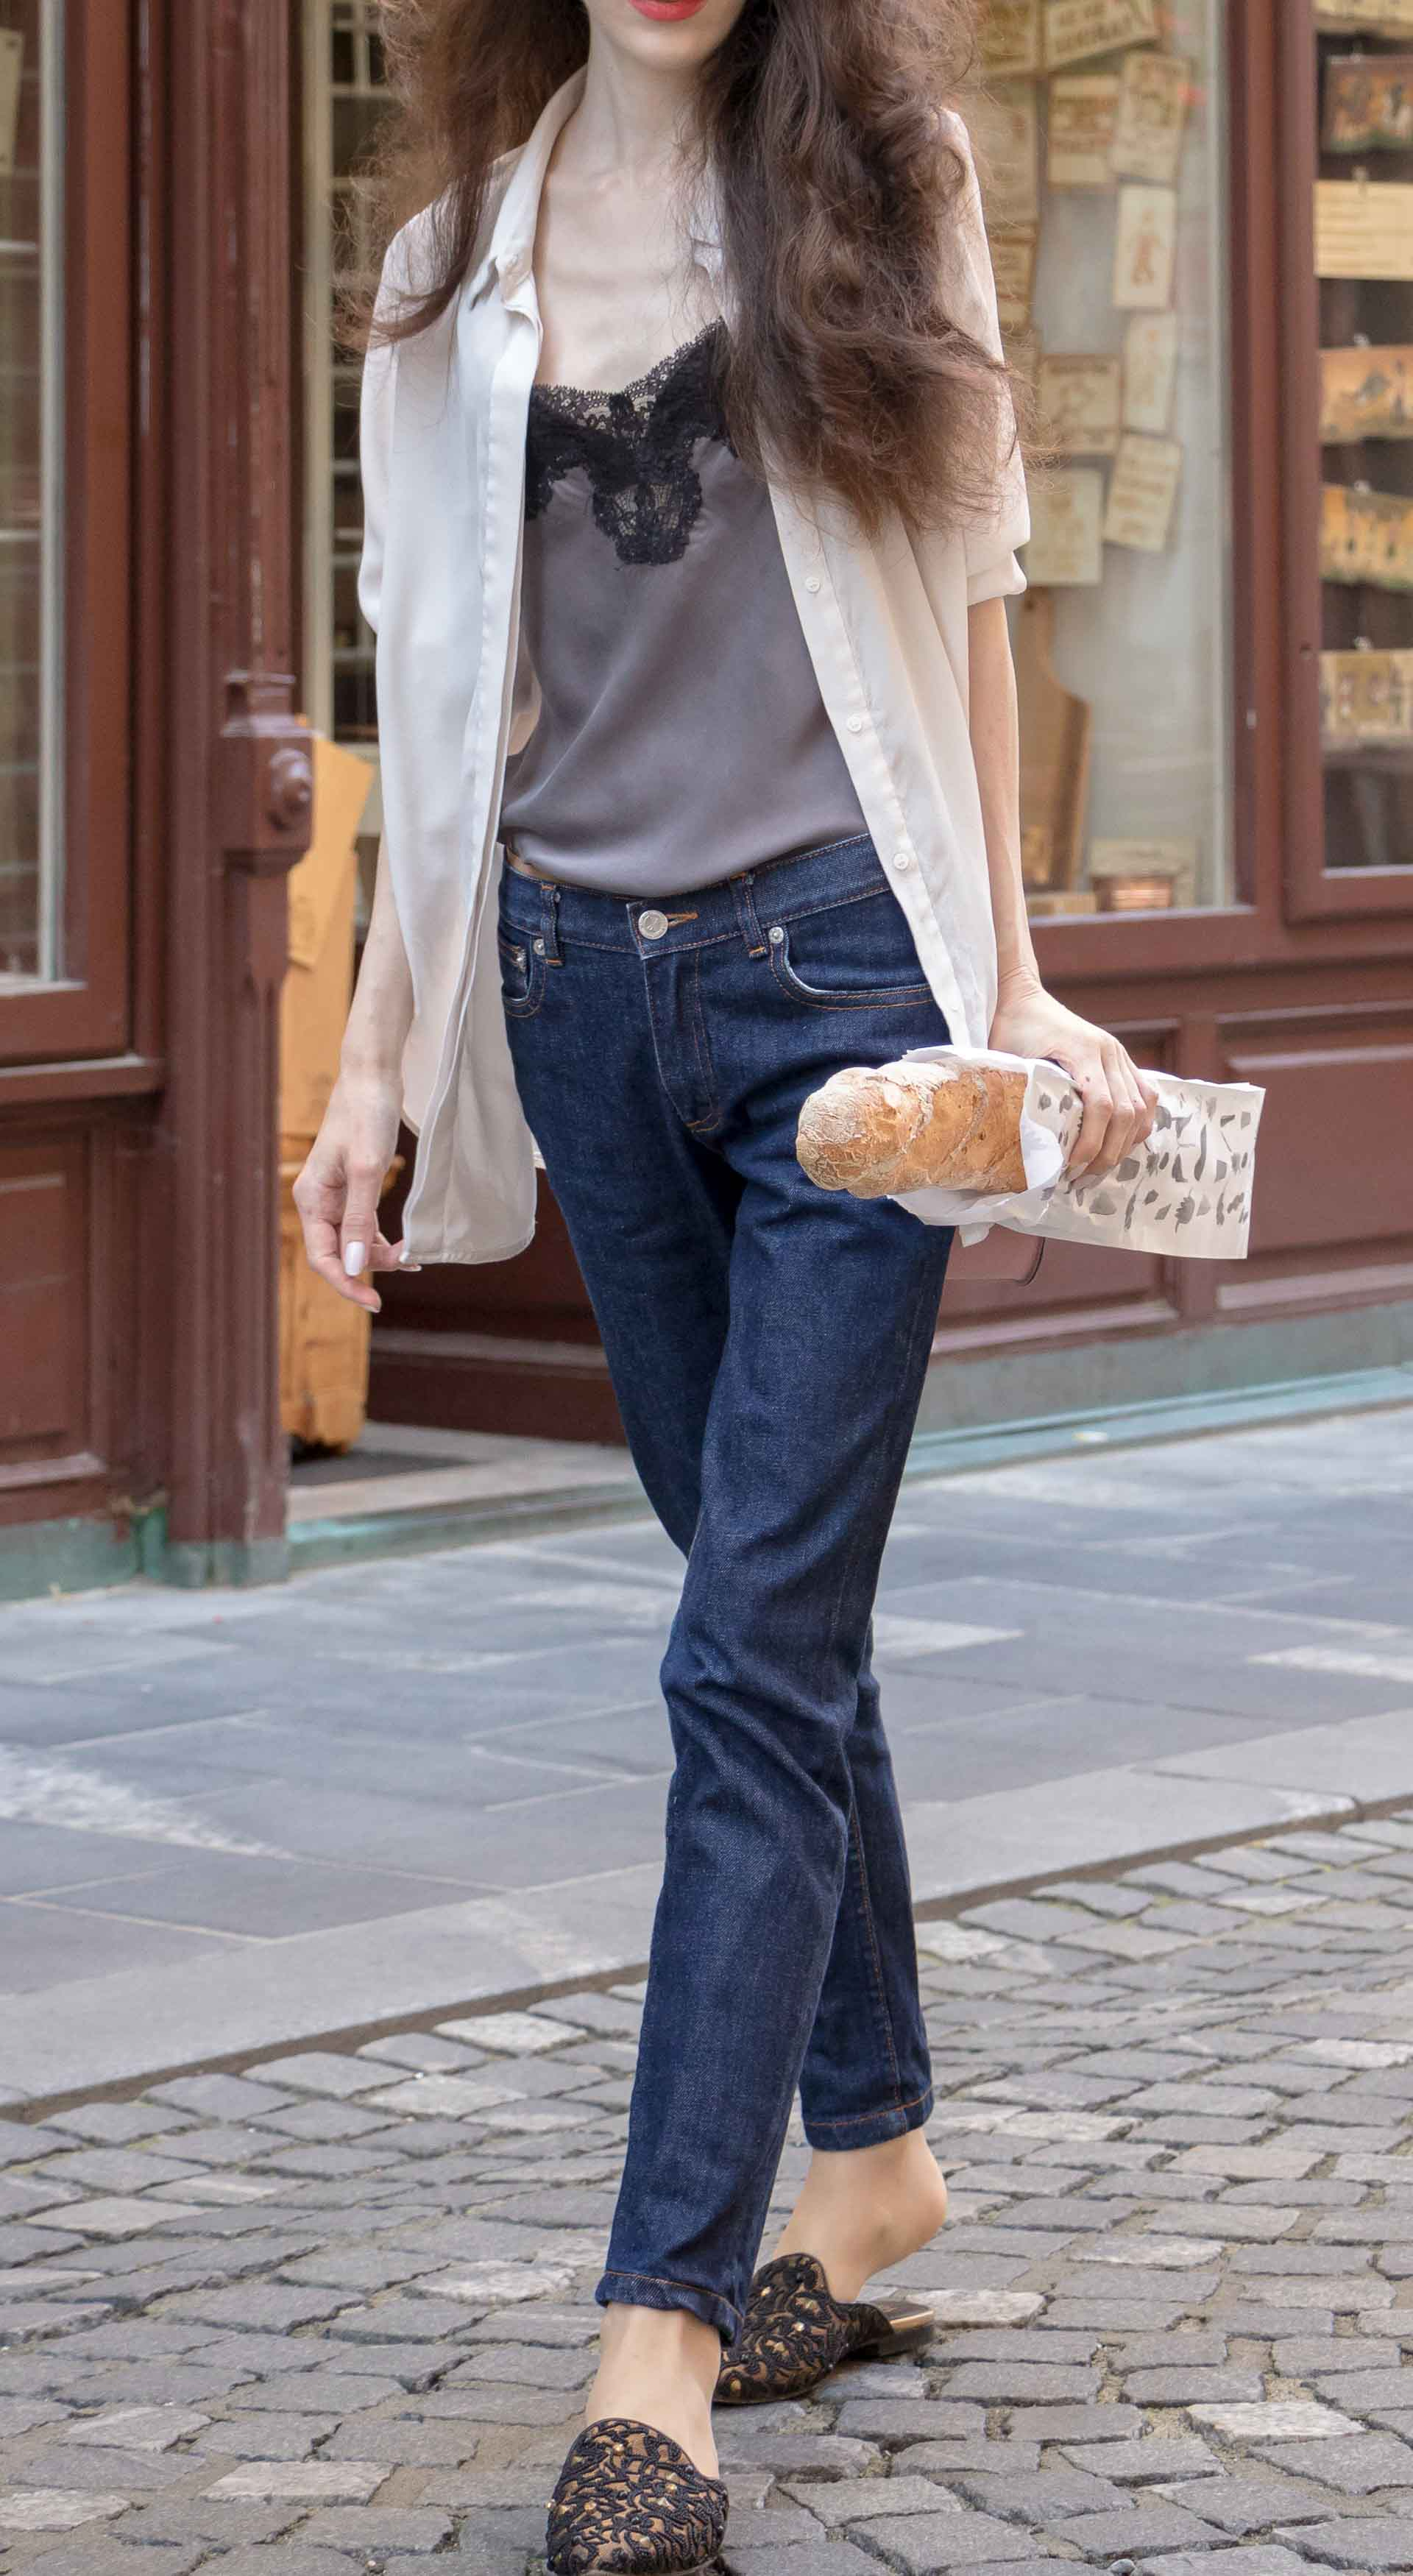 Fashion Blogger Veronika Lipar of Brunette from Wall Street dressed in white organza shirt with transparent back from Sandro Paris, grey silk slip top, A.P.C. dark denim jeans, mules, pink Furla shoulder bag, on her way from the bakery